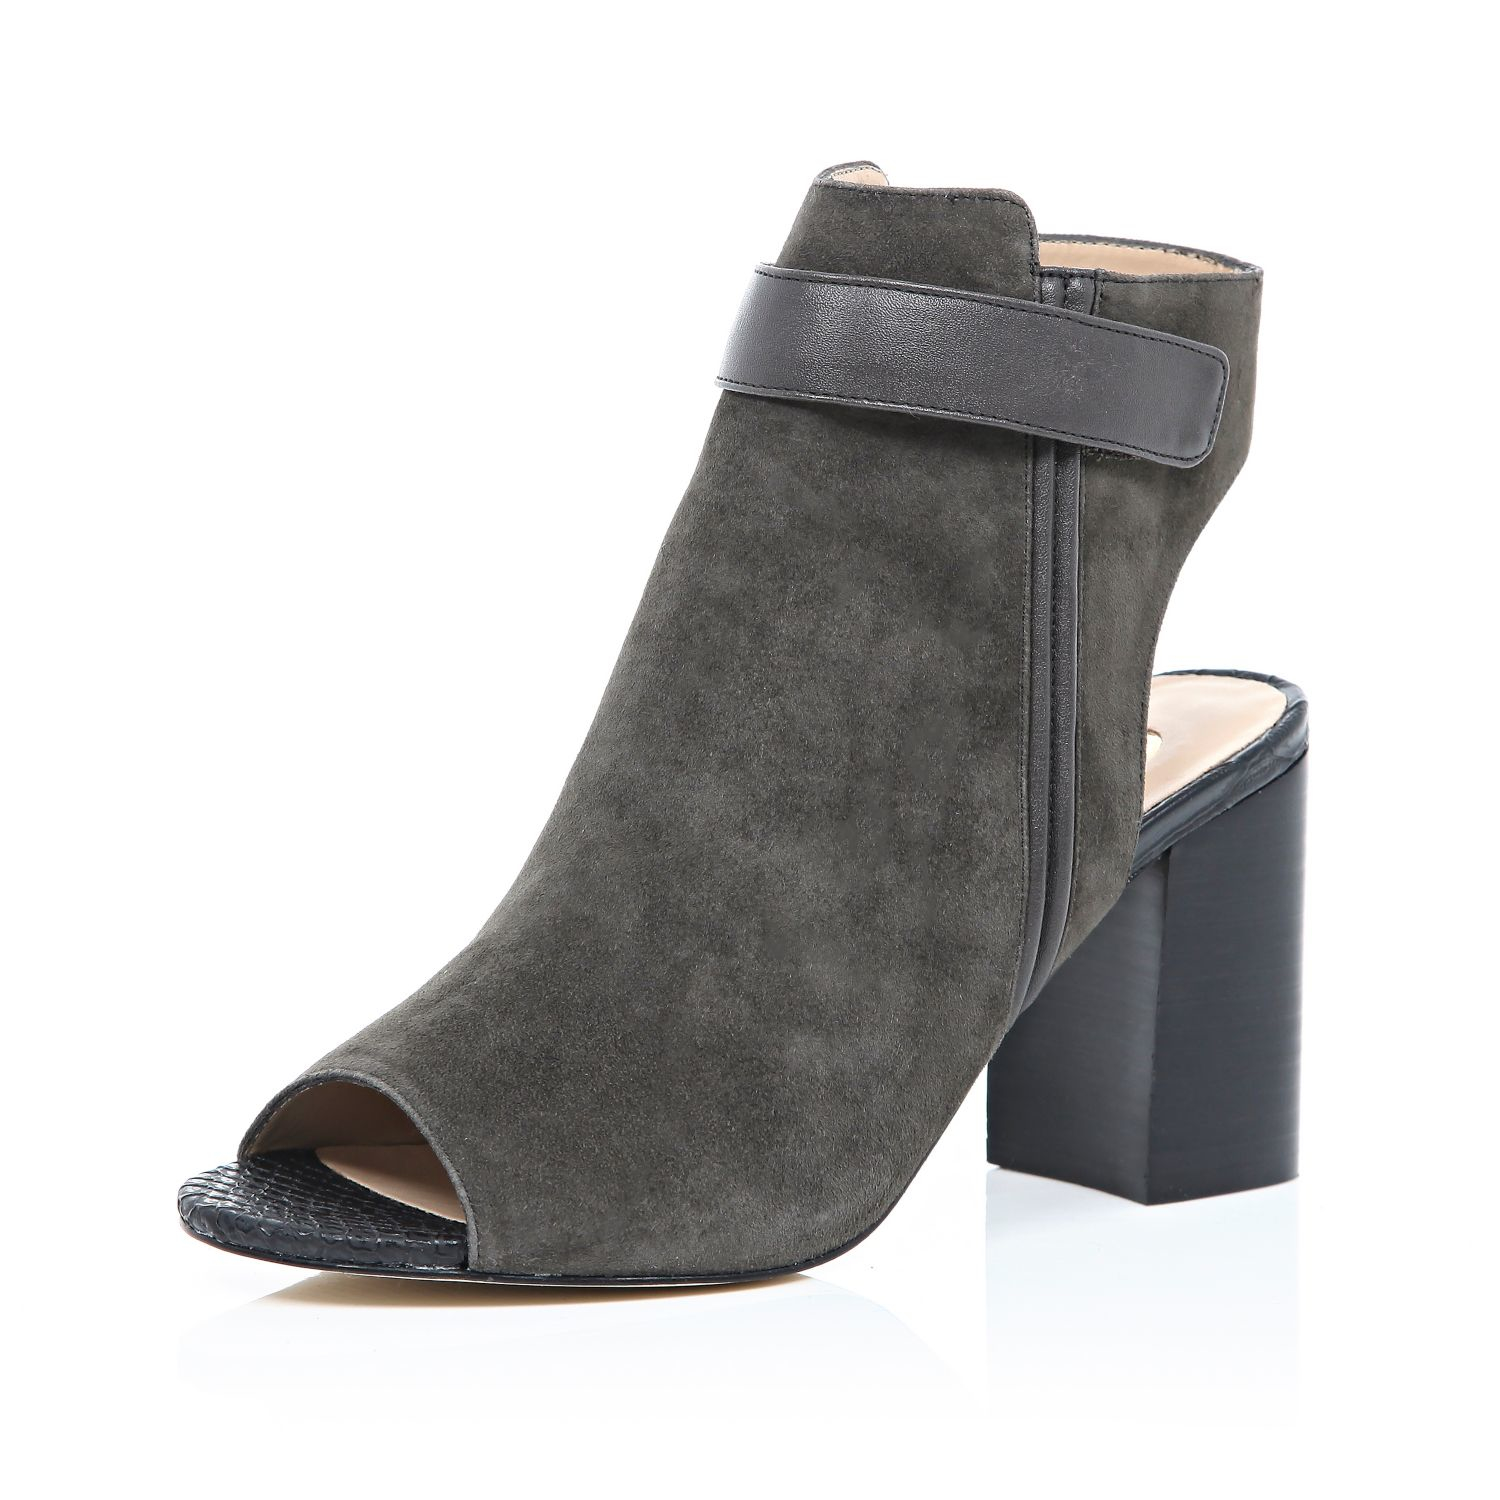 River Island Grey Suede Peep Toe Heeled Ankle Boots in Gray - Lyst acf6657b8317